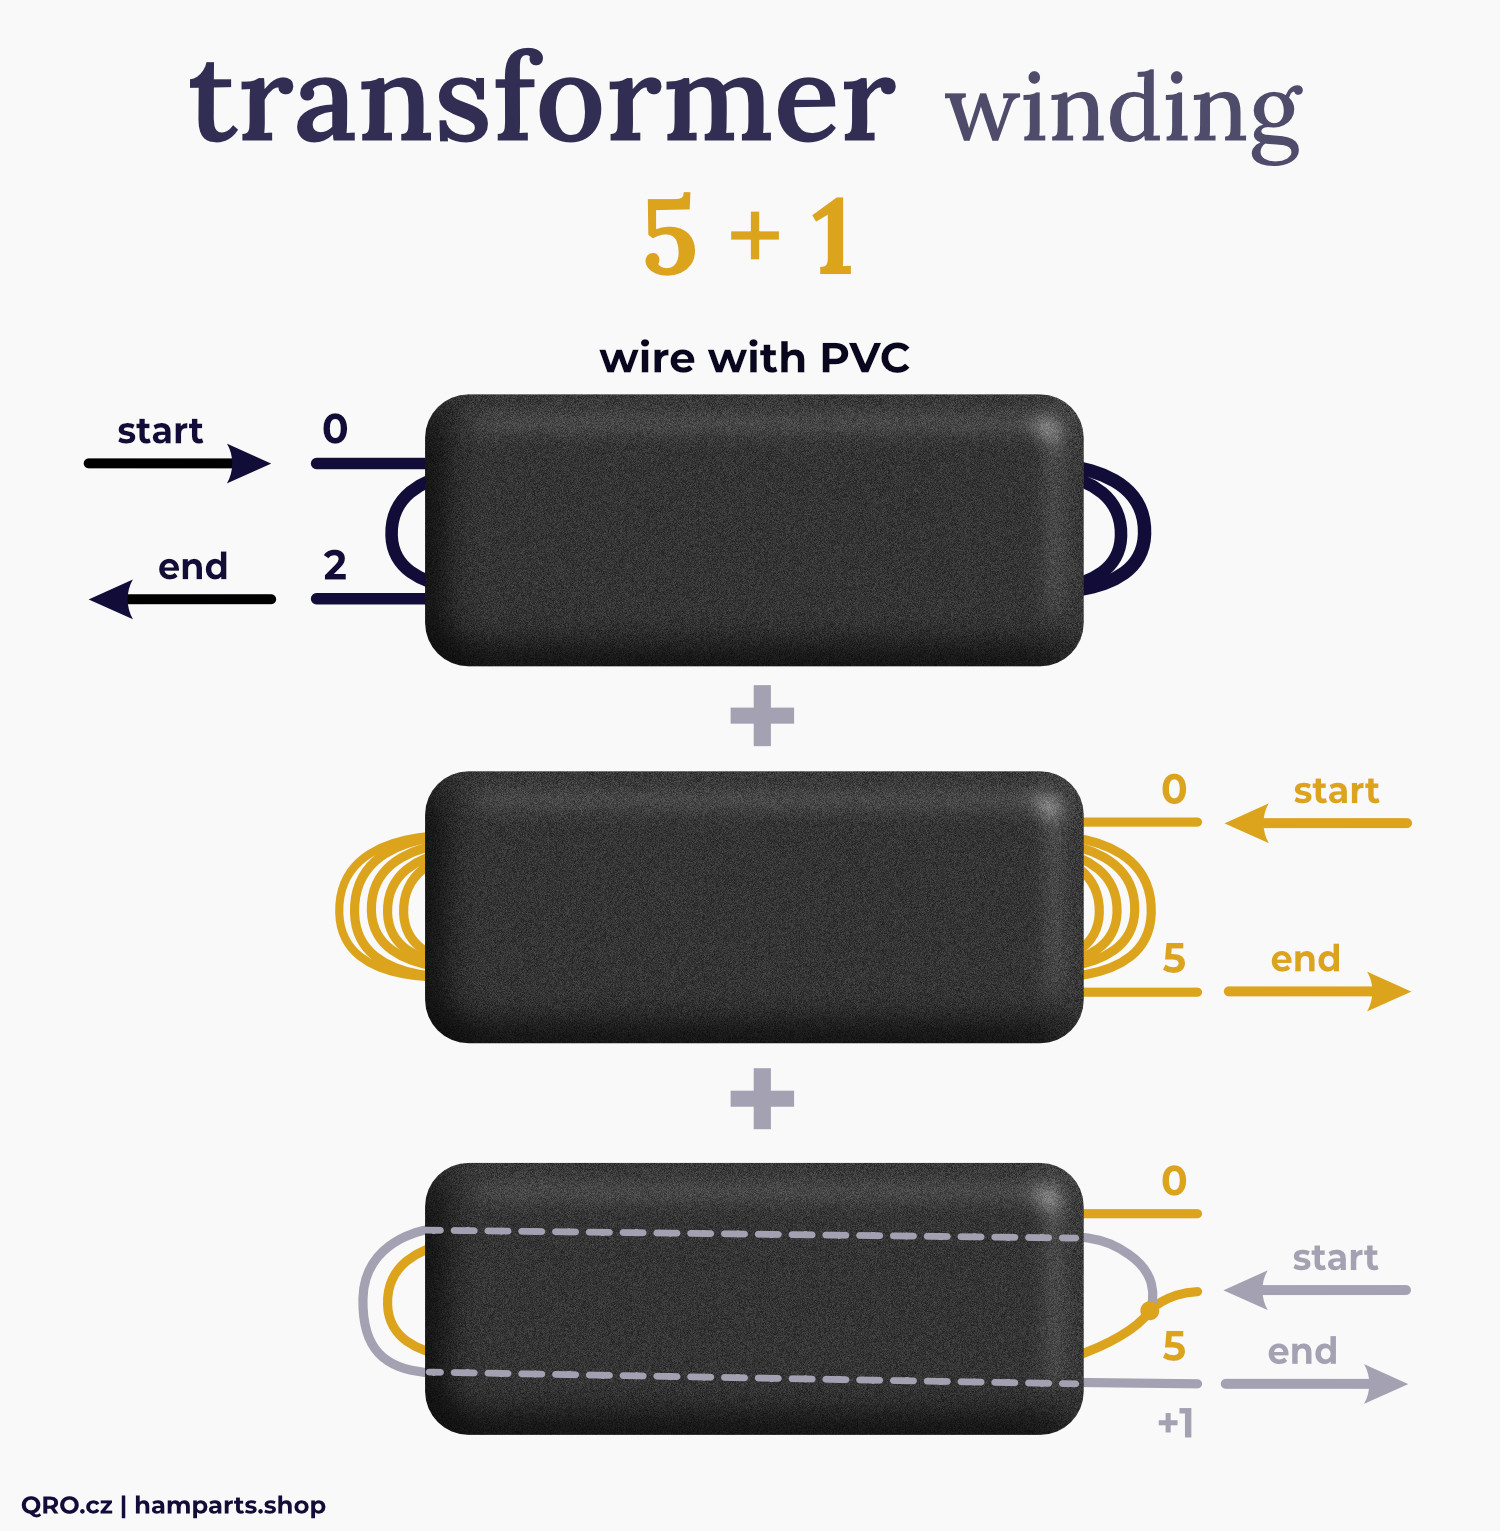 transformers winding for single wire classic beverage by qro.cz hamparts.shop